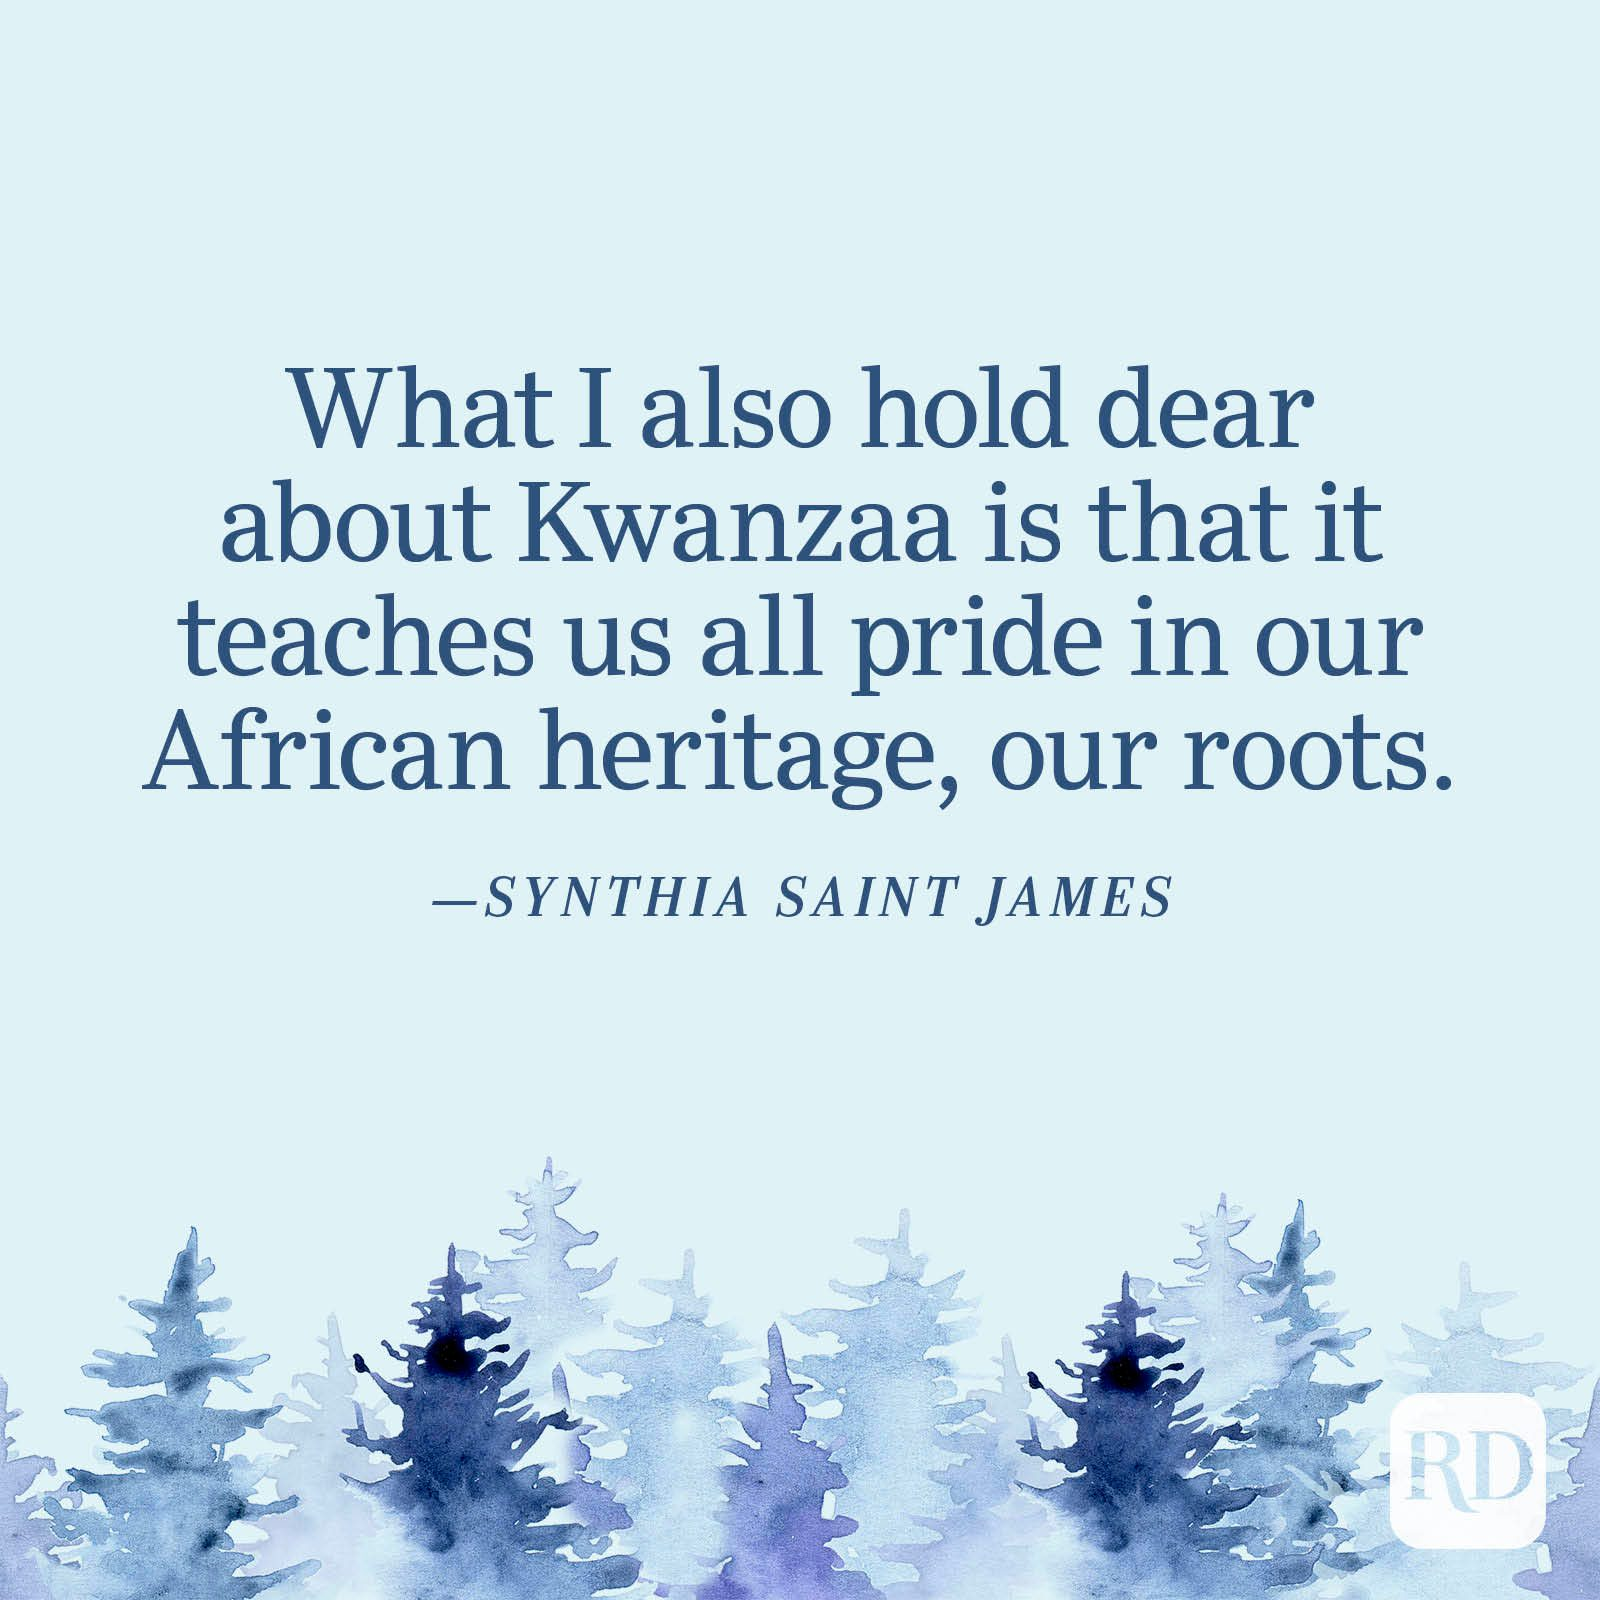 """""""What I also hold dear about Kwanzaa is that it teaches us all pride in our African heritage, our roots."""" —Synthia Saint James"""